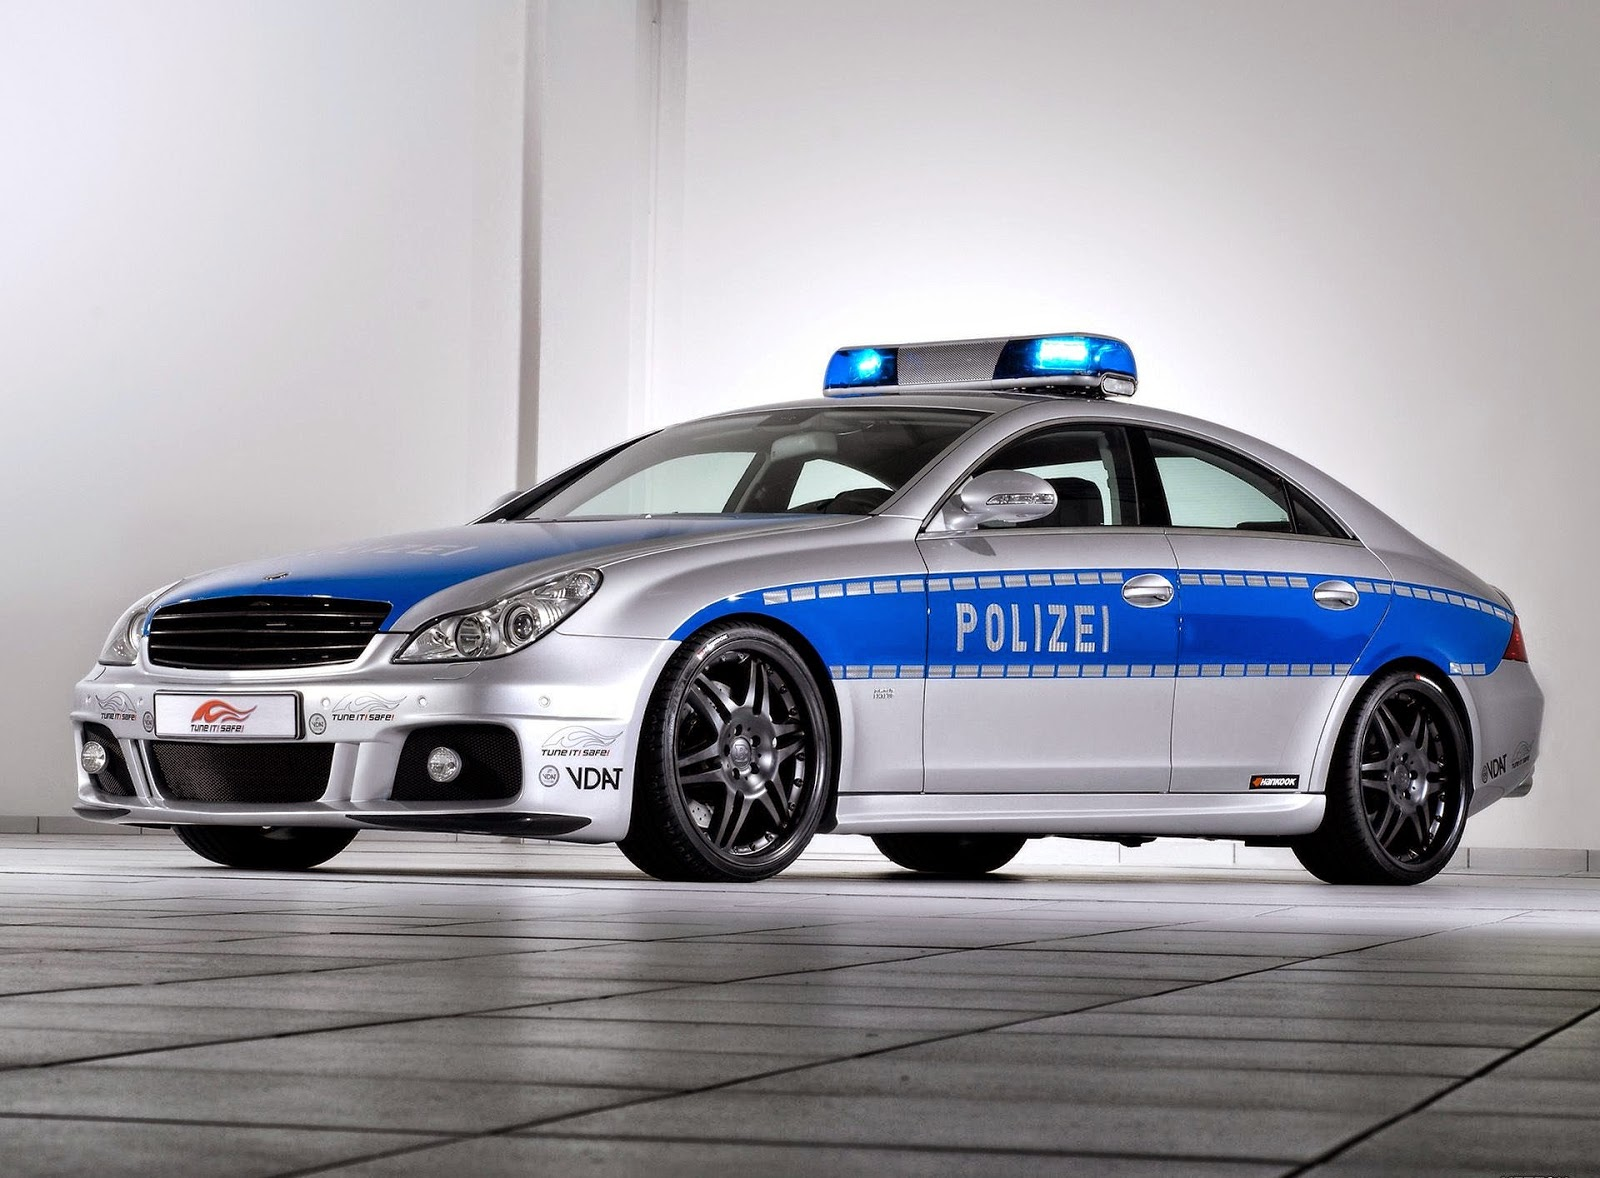 Best of police cars - The Best Police Cars In The World